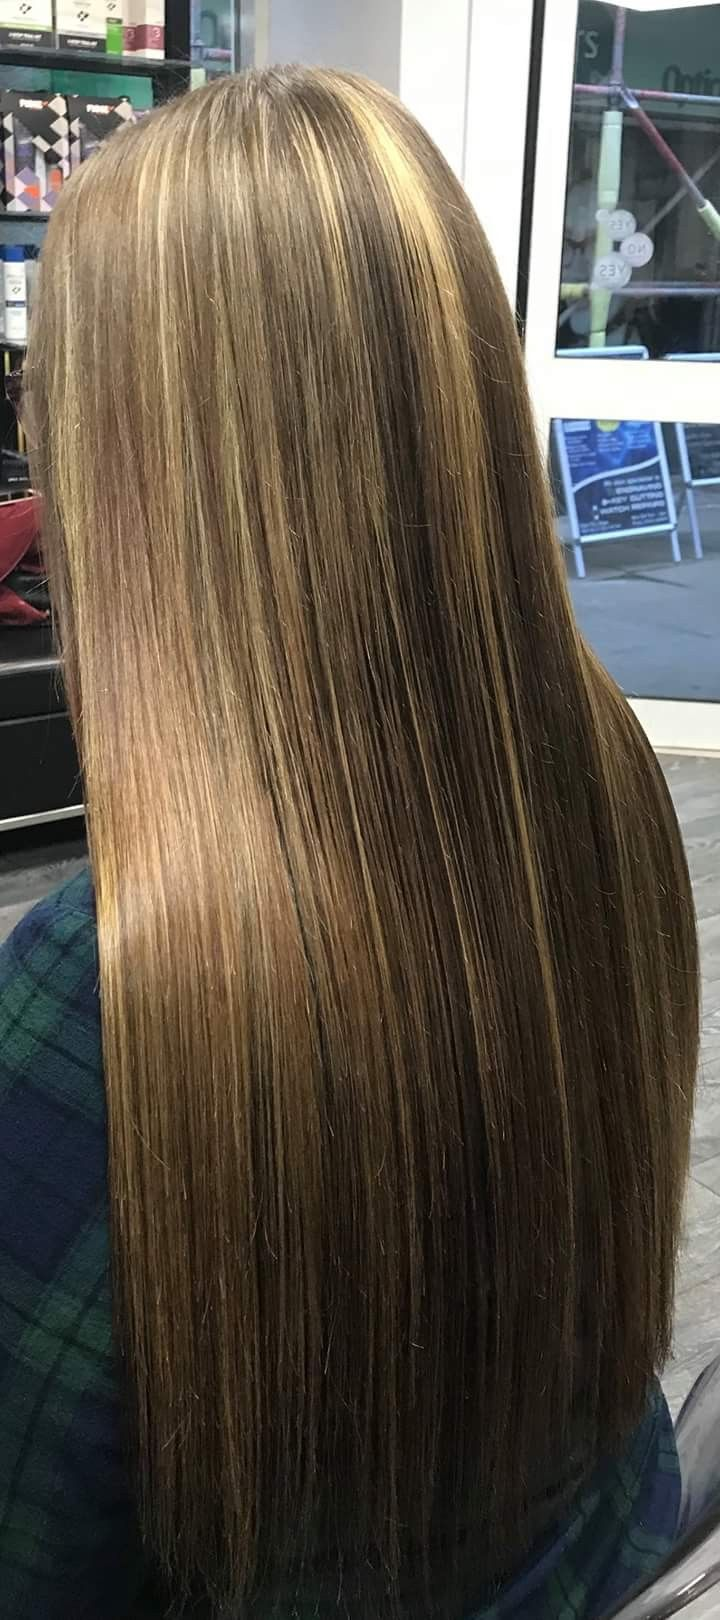 Half Head Of Highlights On 27 Long Hair By Rea J At Aqua Hair In Beauty I Can Say I Am Pleased With The Long Hair Styles Long Straight Hair Super Long